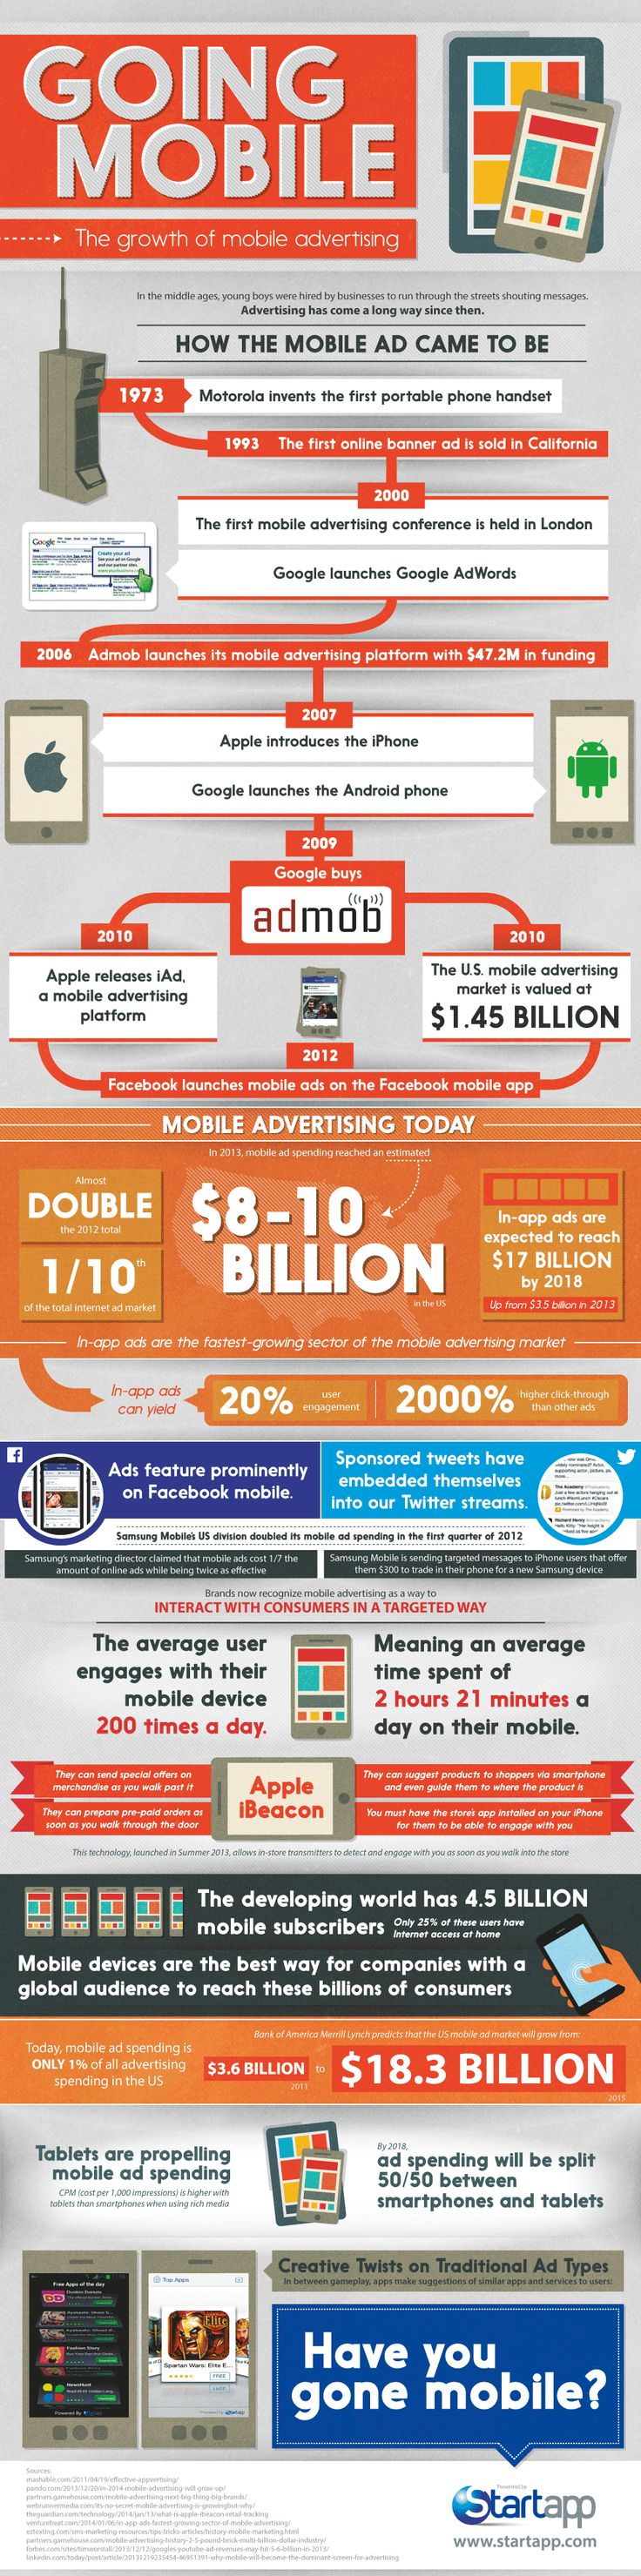 The Growth of Mobile Advertising   #Infographic #Mobile #Advertising